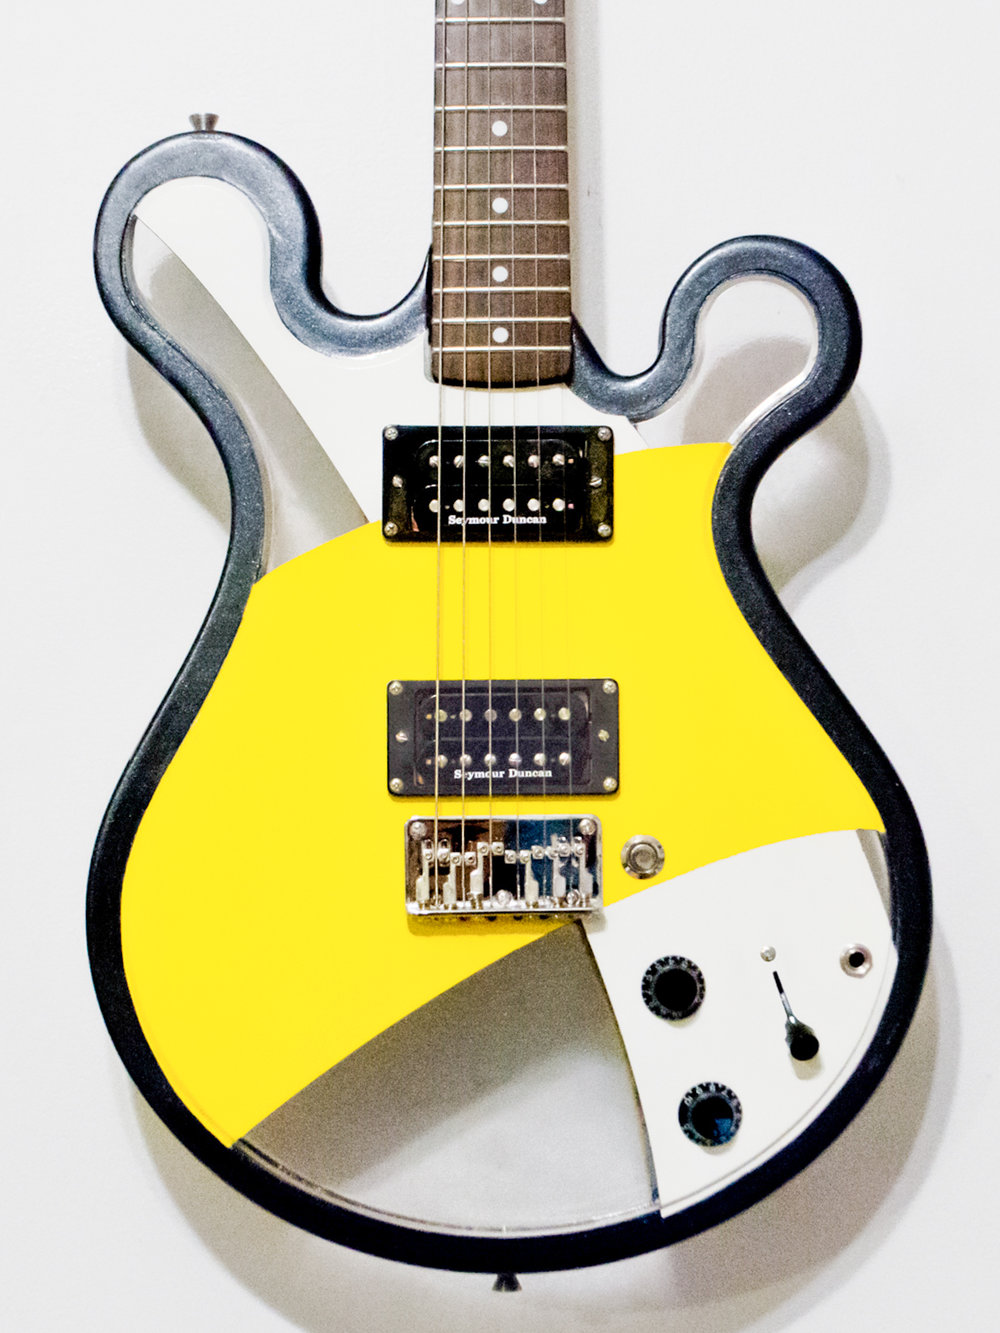 Gallo_Guitar_Loop_Black_White_Yellow_LED.jpg